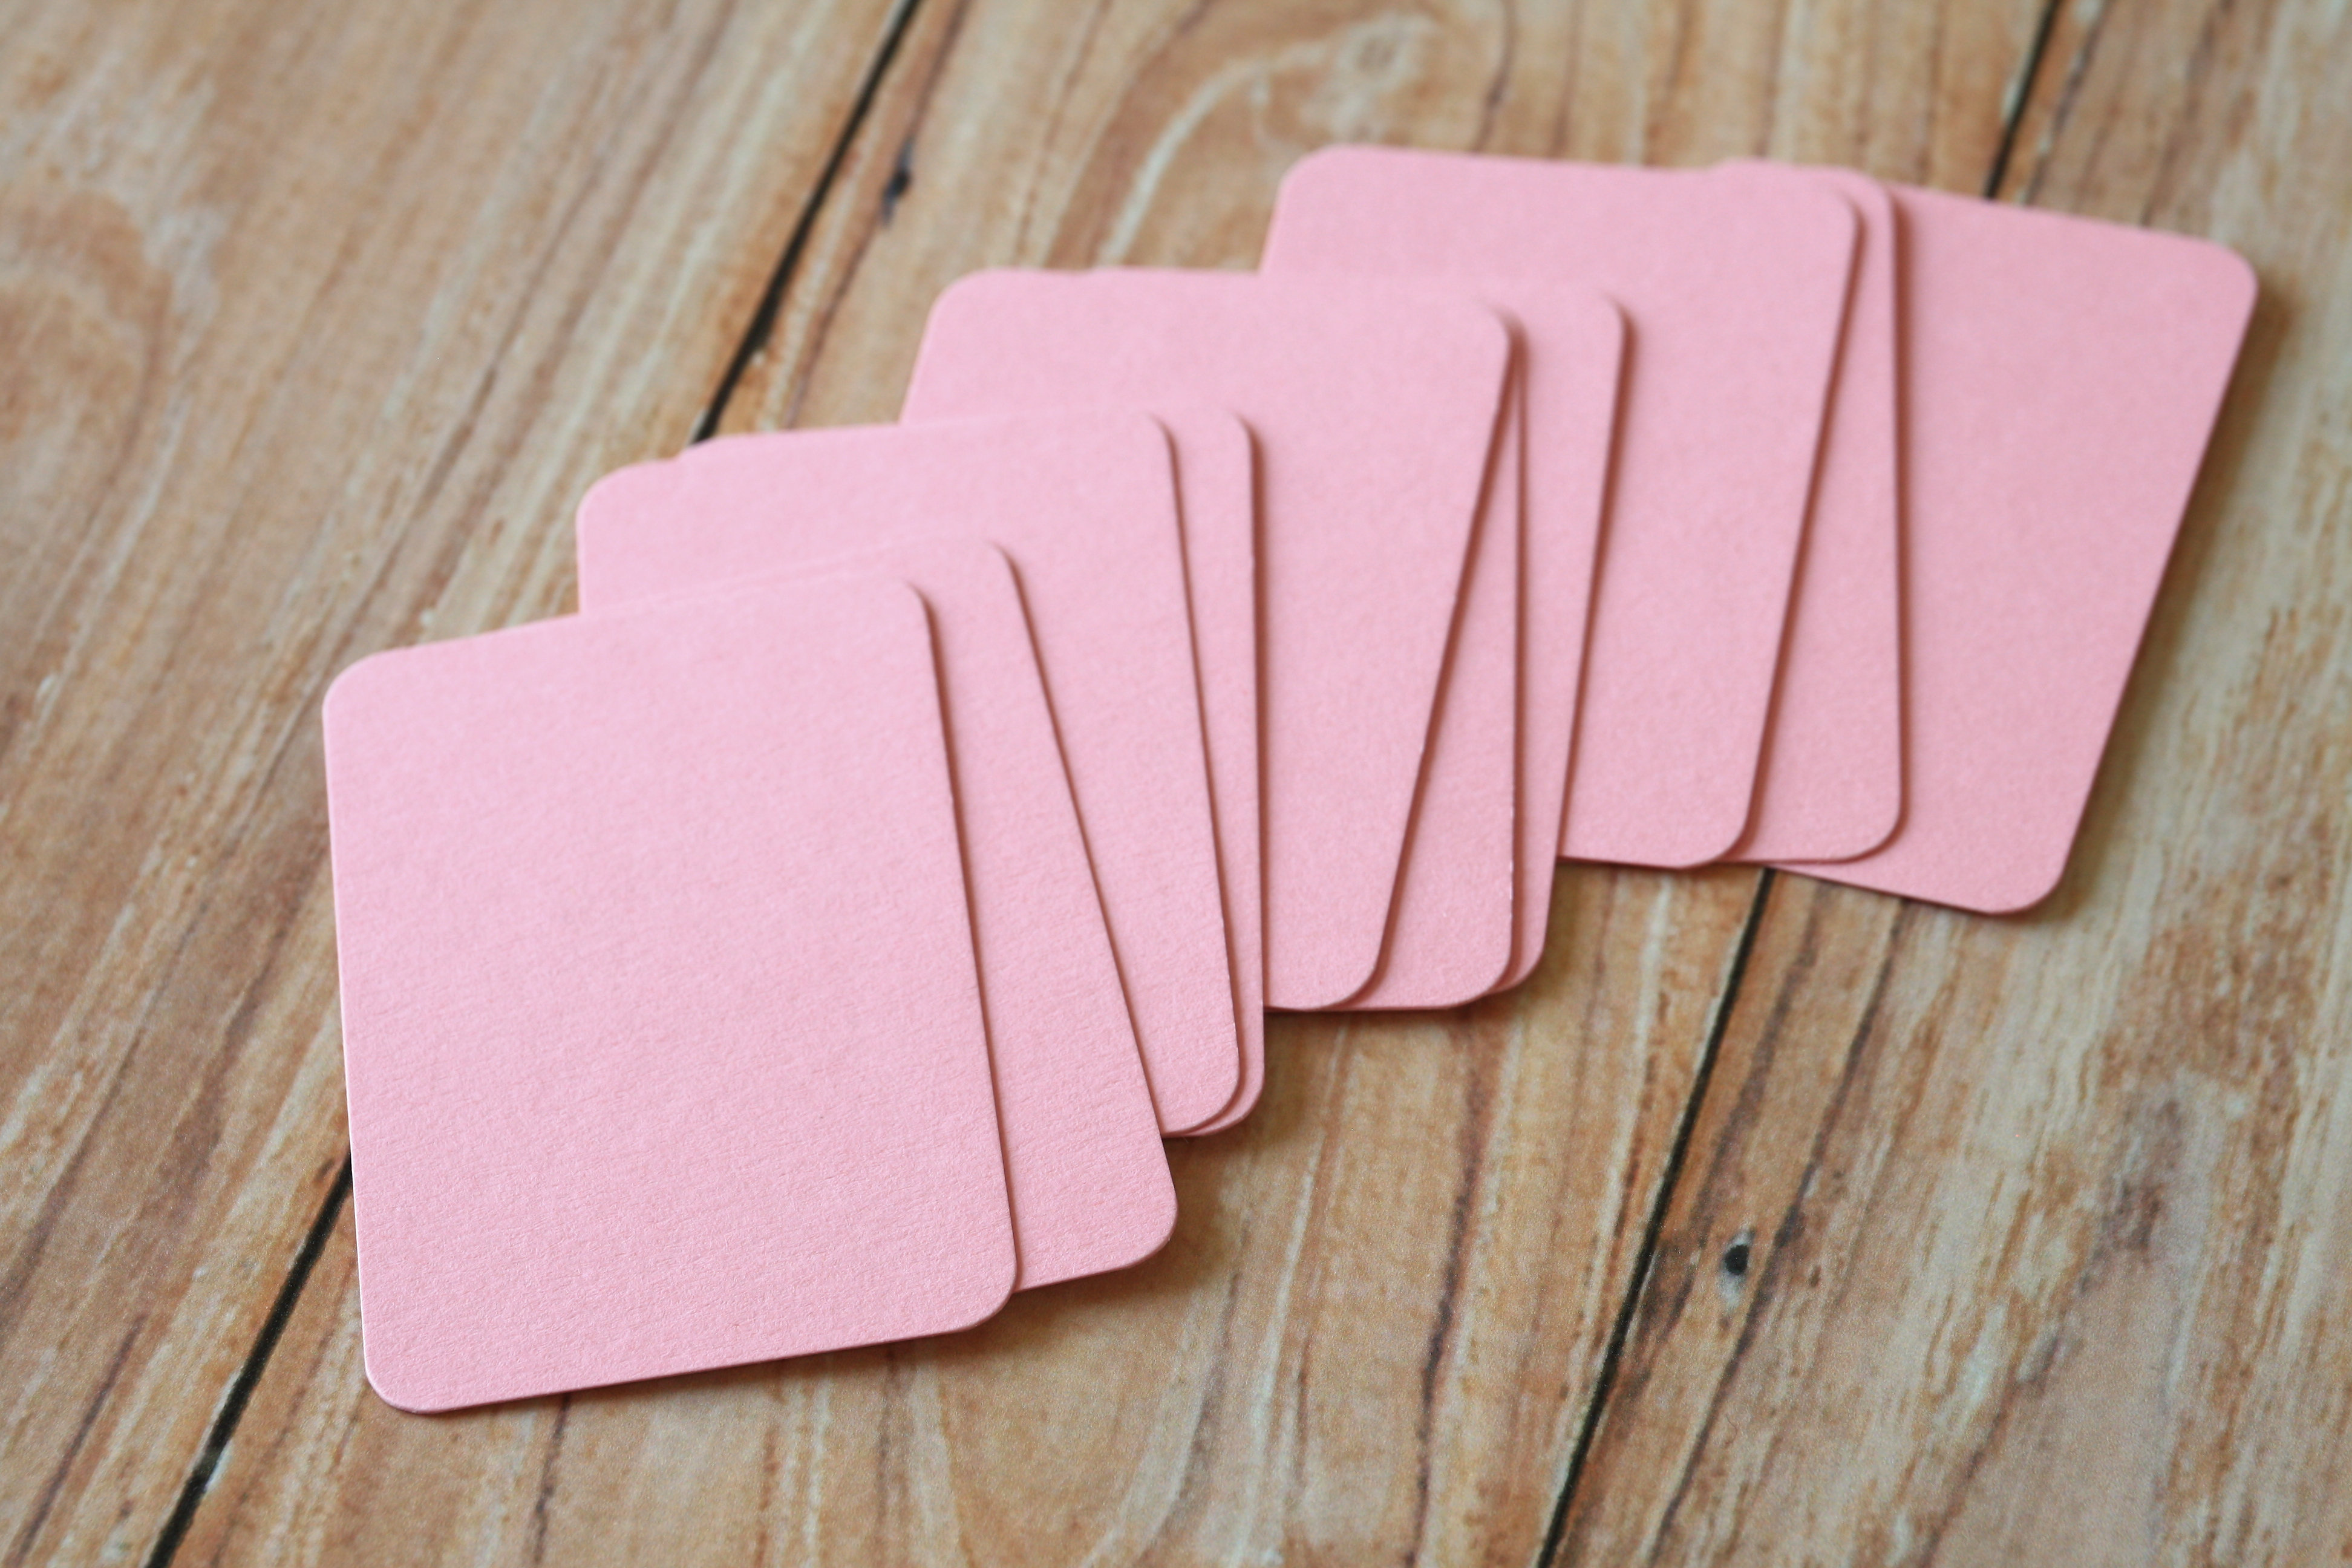 Pastel pink blank business cards very eco friendly these are ready to use for customized stamped business name cards hang tags mini post cards or reheart Choice Image